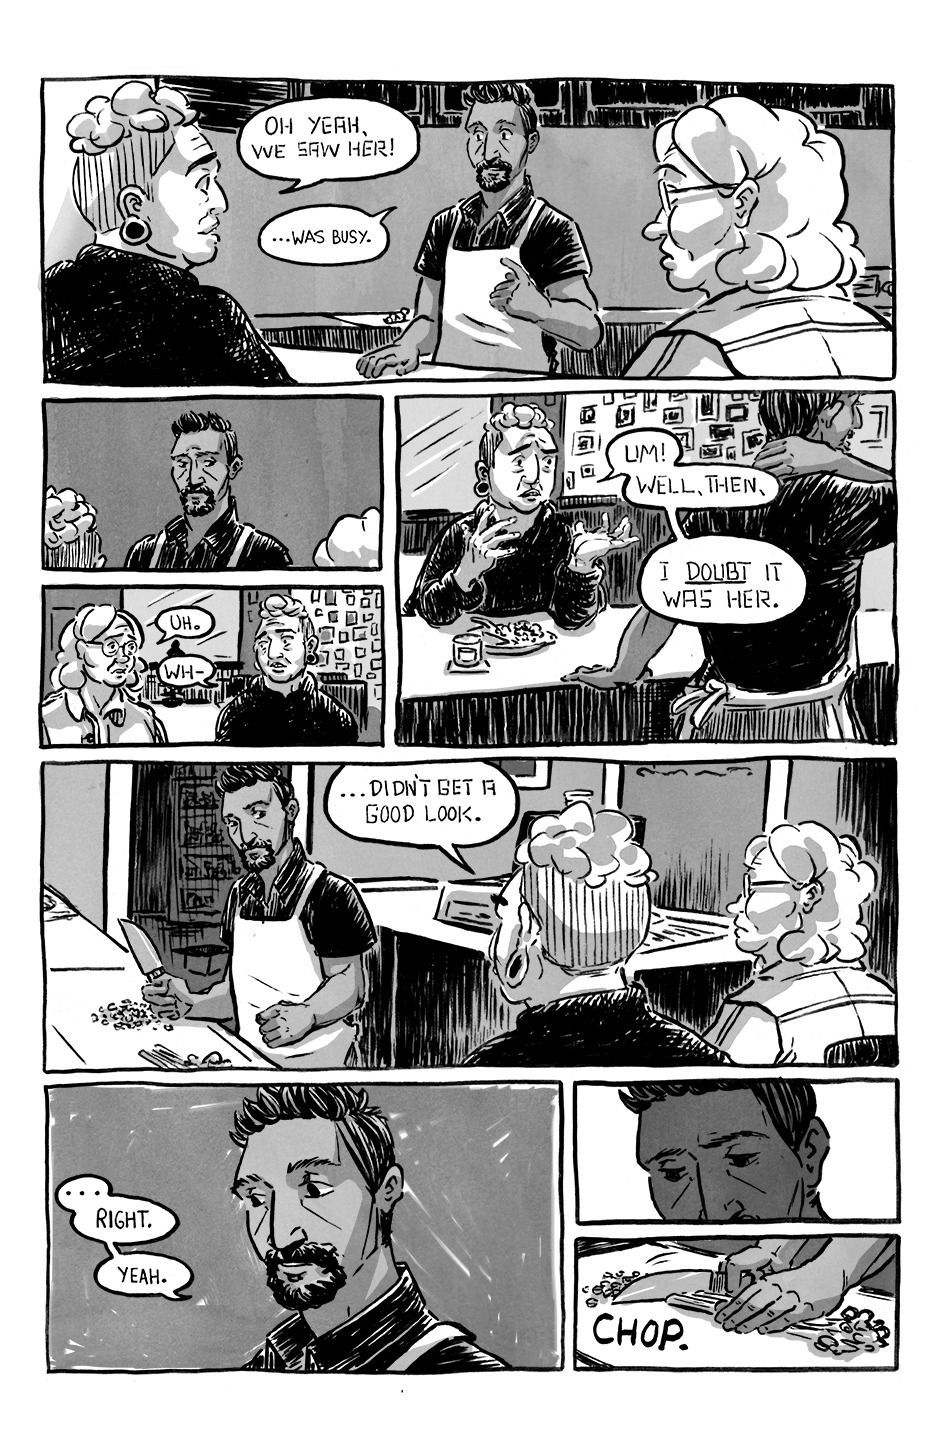 Interlude #2, Page 2/End of Interlude